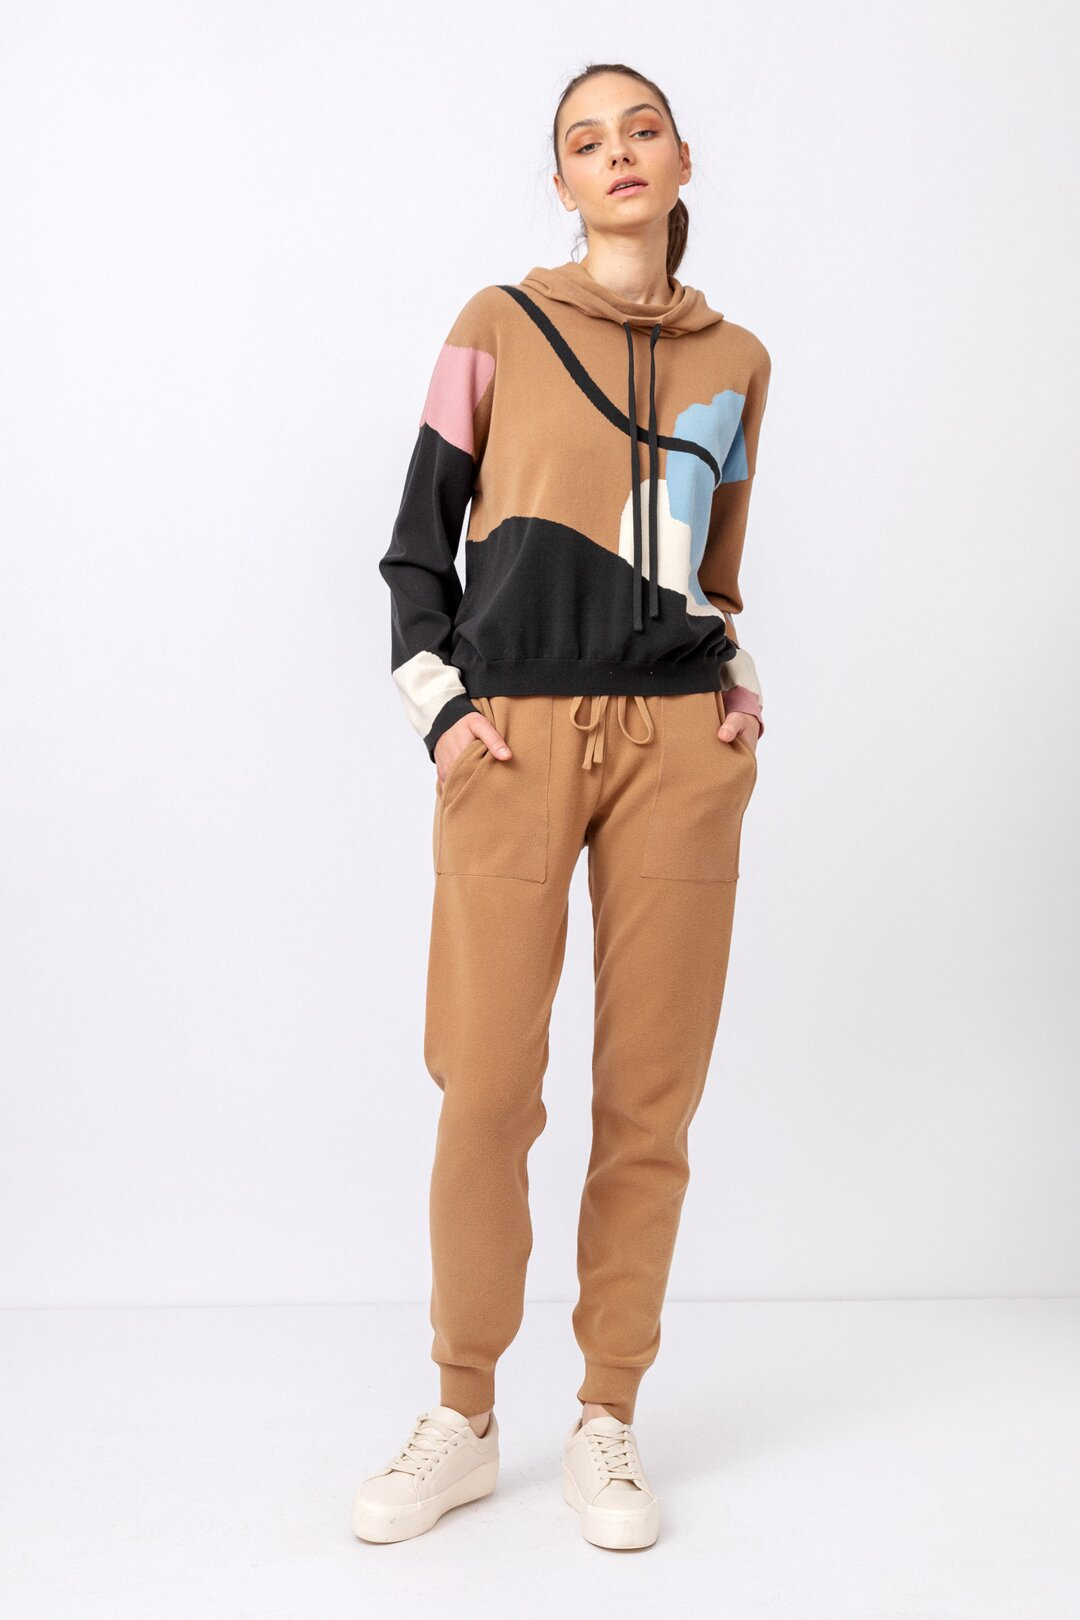 outfit-7c8a9985